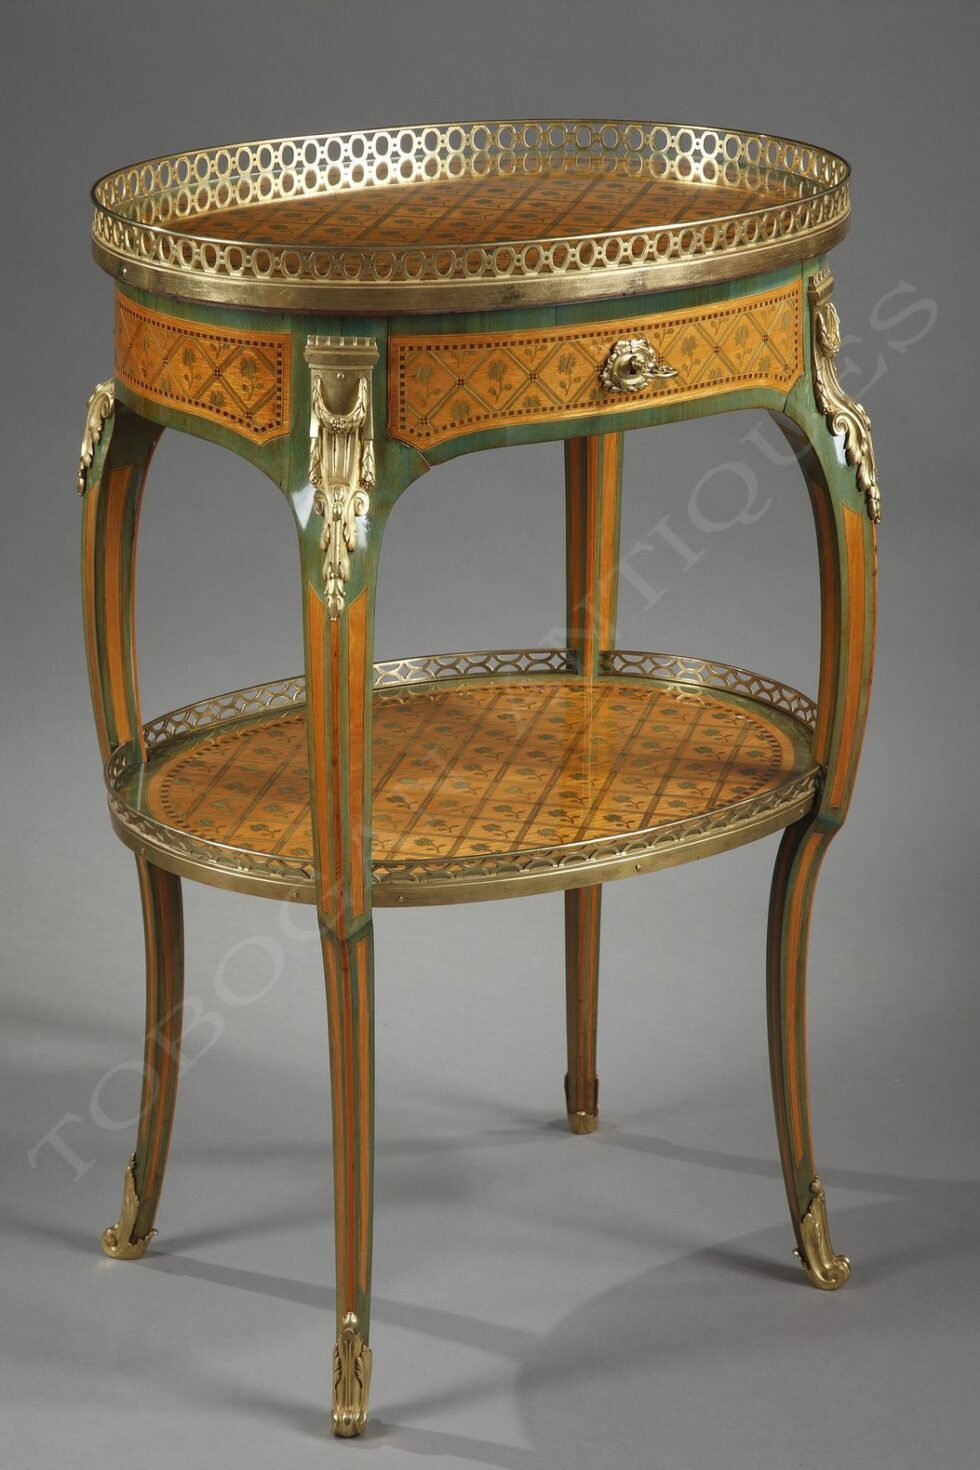 G. Durand <br/> Charming oval table